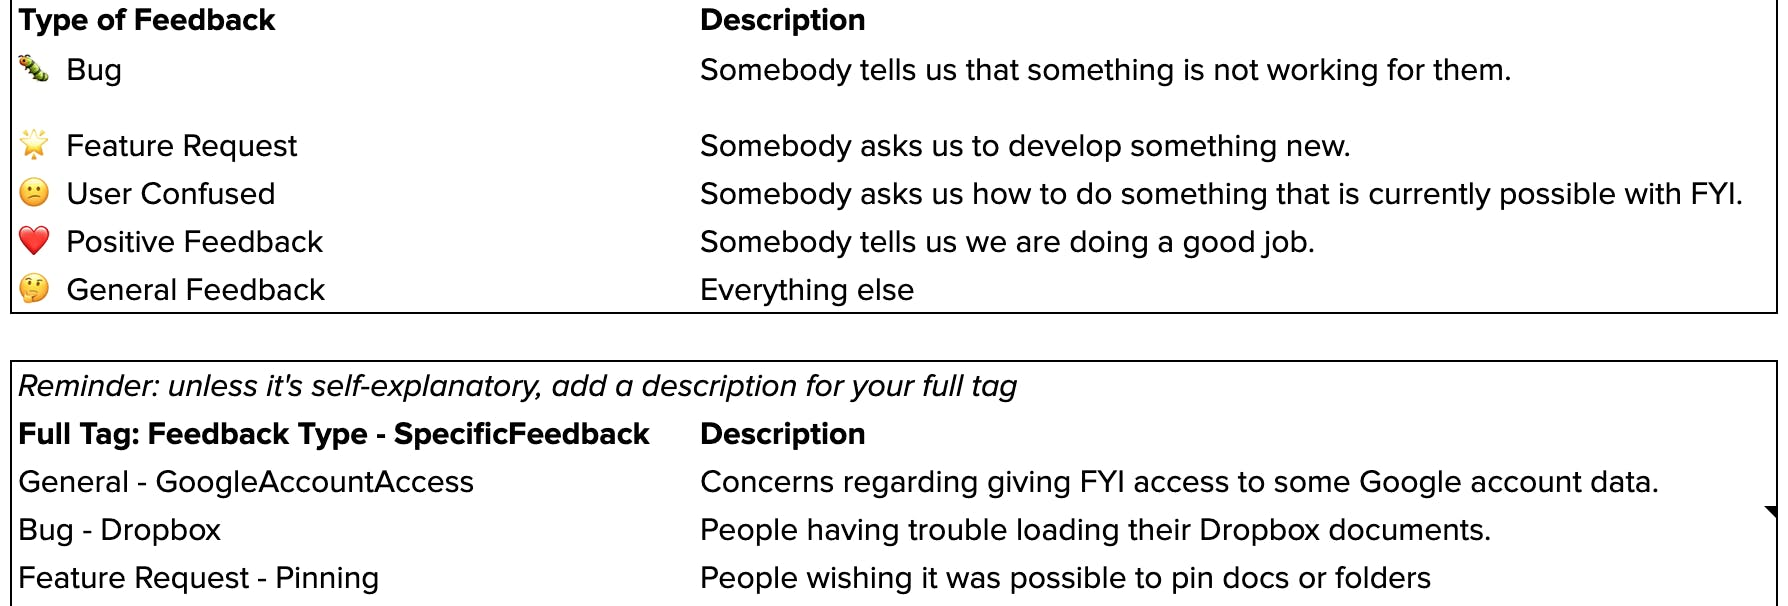 product feedback types categories